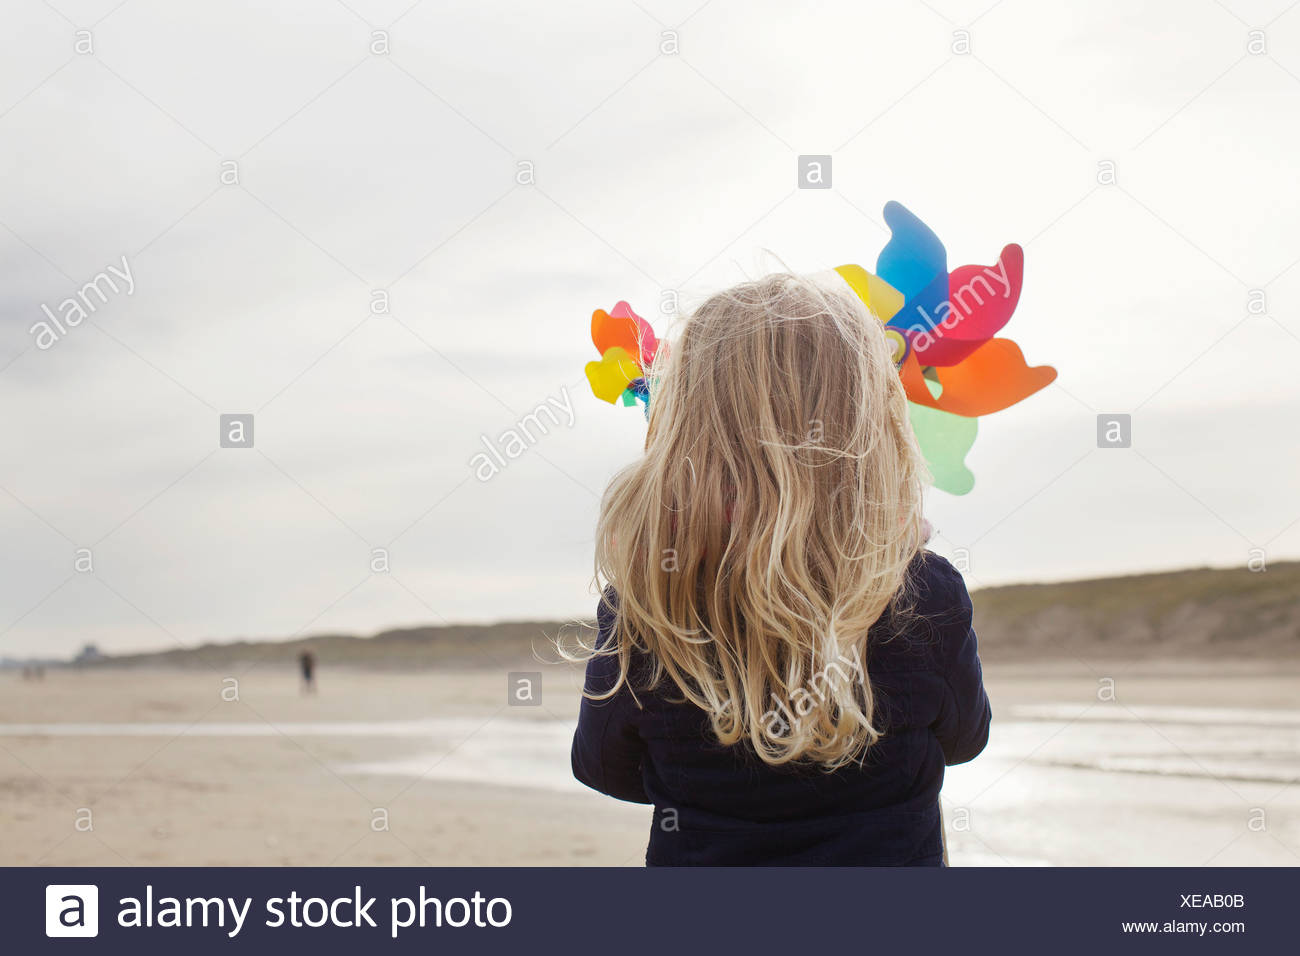 Rear view of girl with paper windmills on beach, Bloemendaal aan Zee, Netherlands - Stock Image